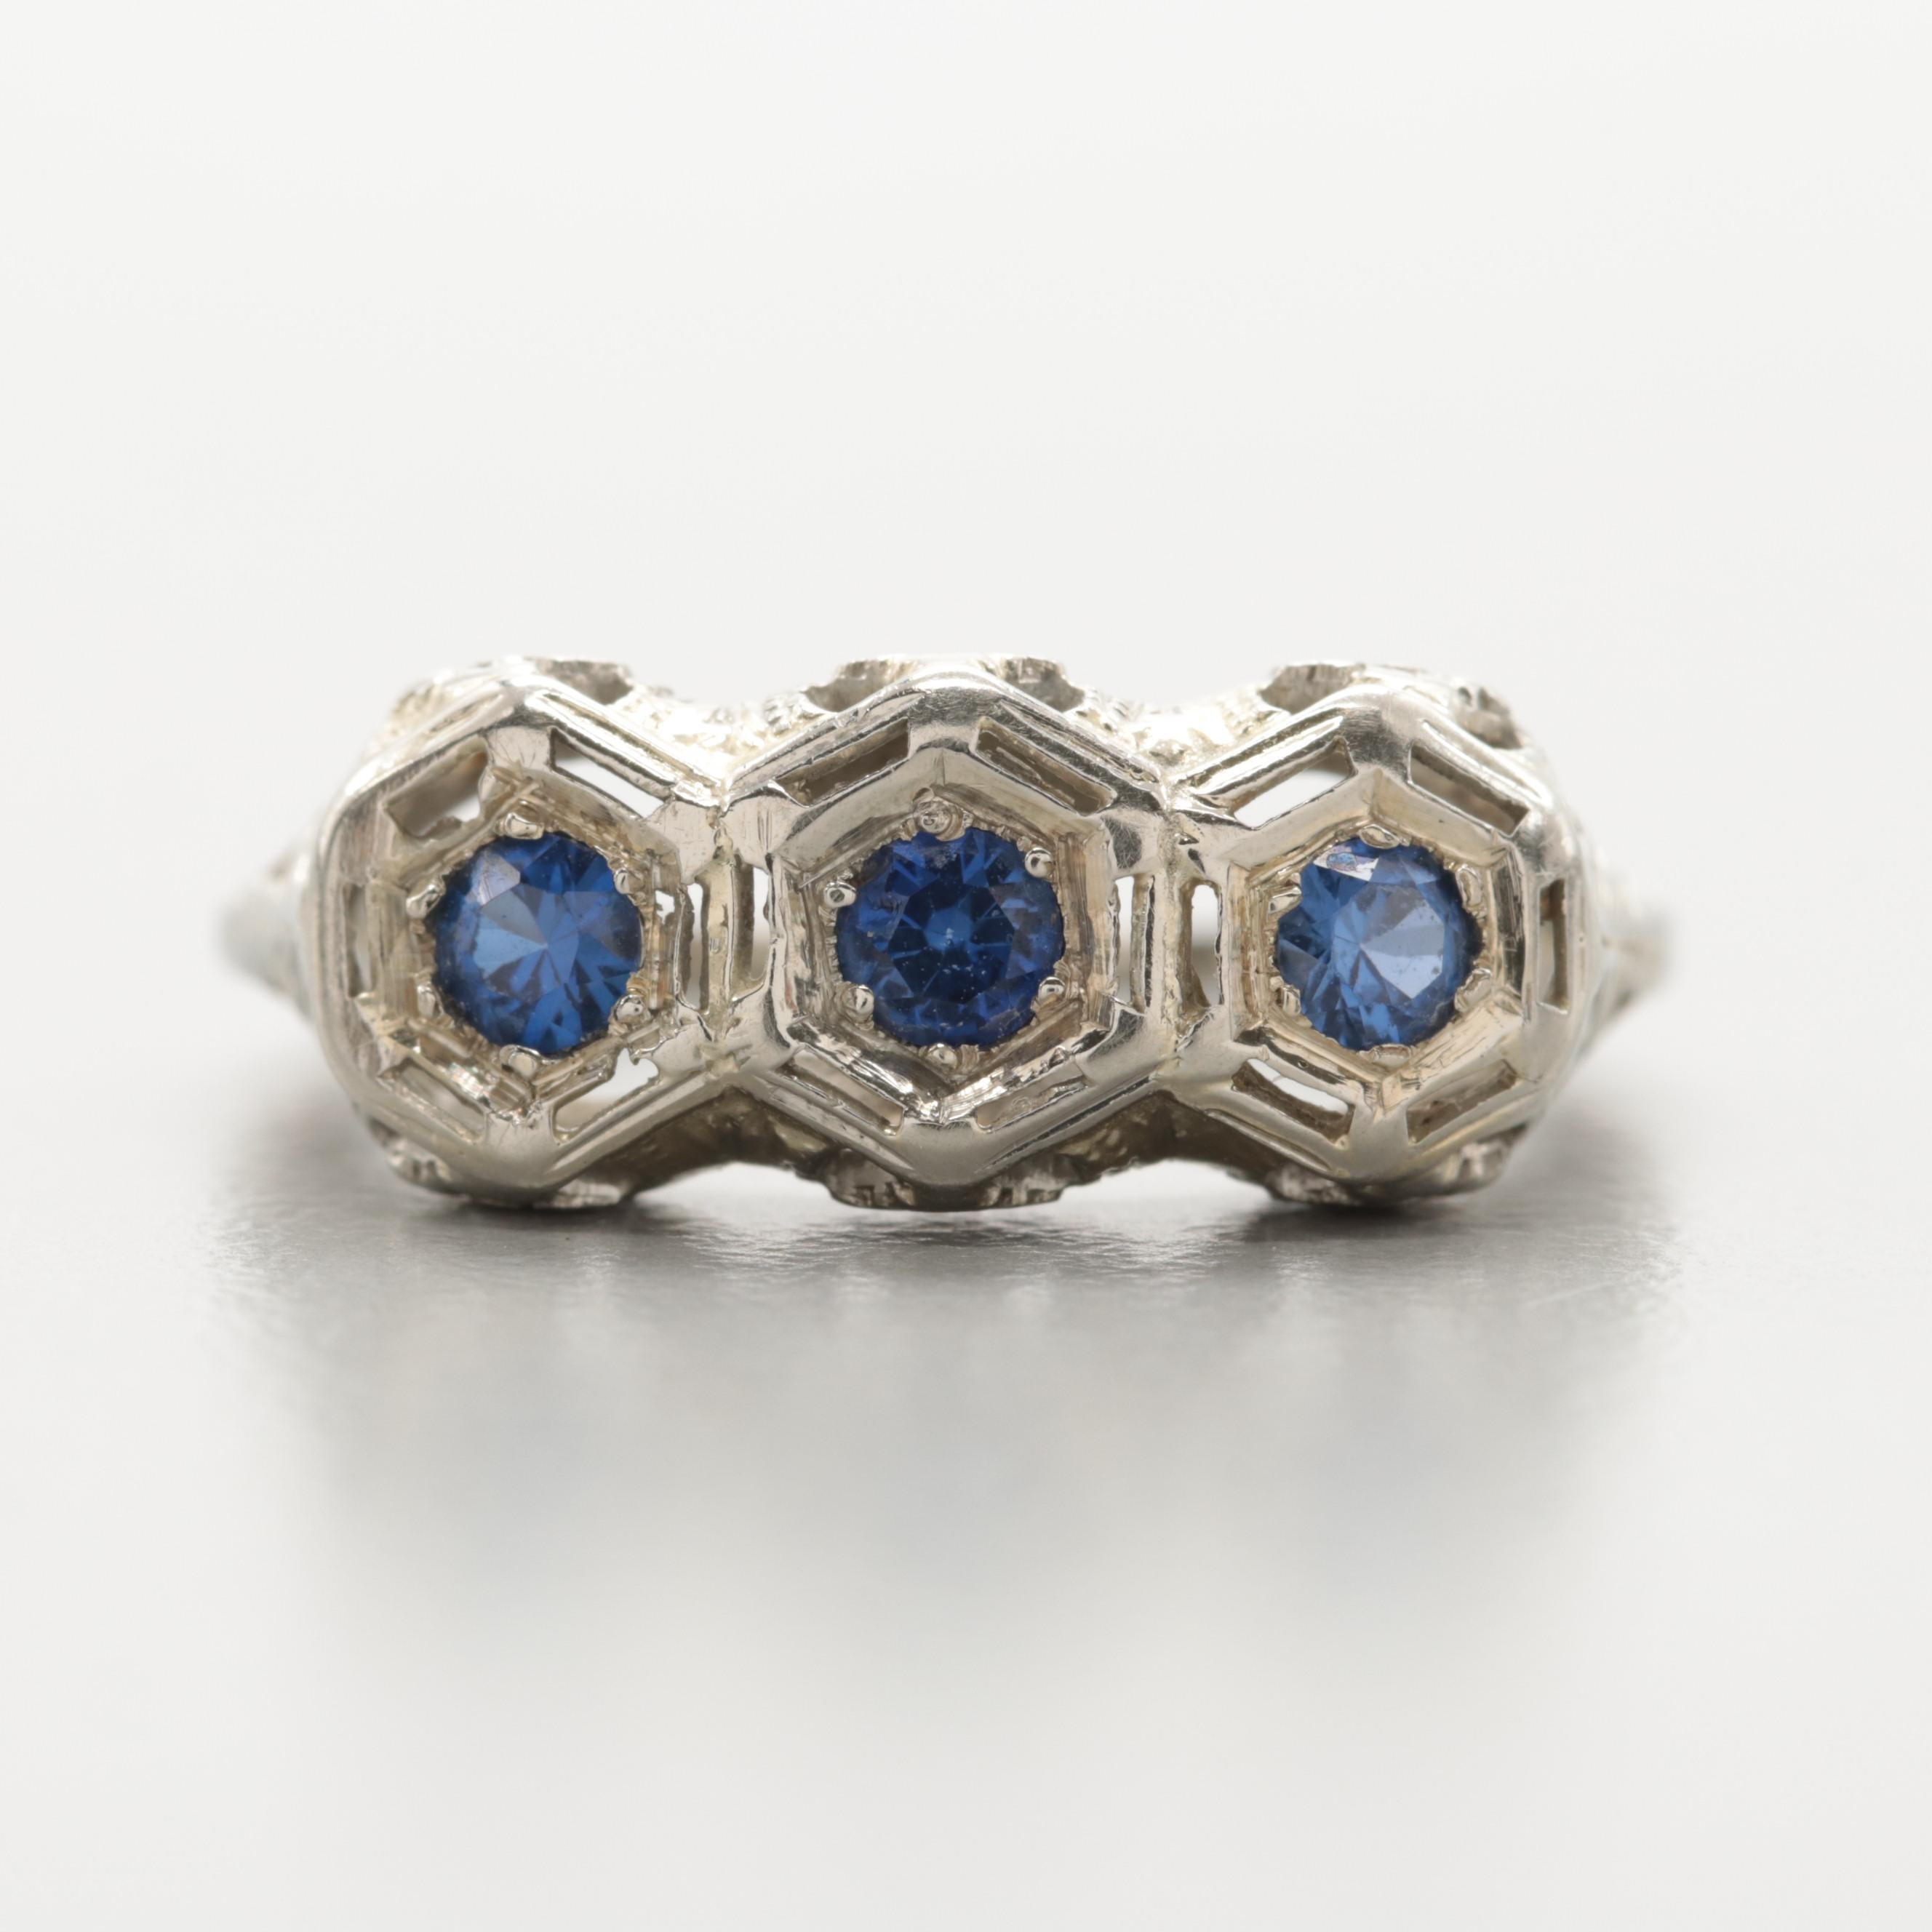 Late Edwardian 18K White Gold Synthetic Blue Sapphire Ring